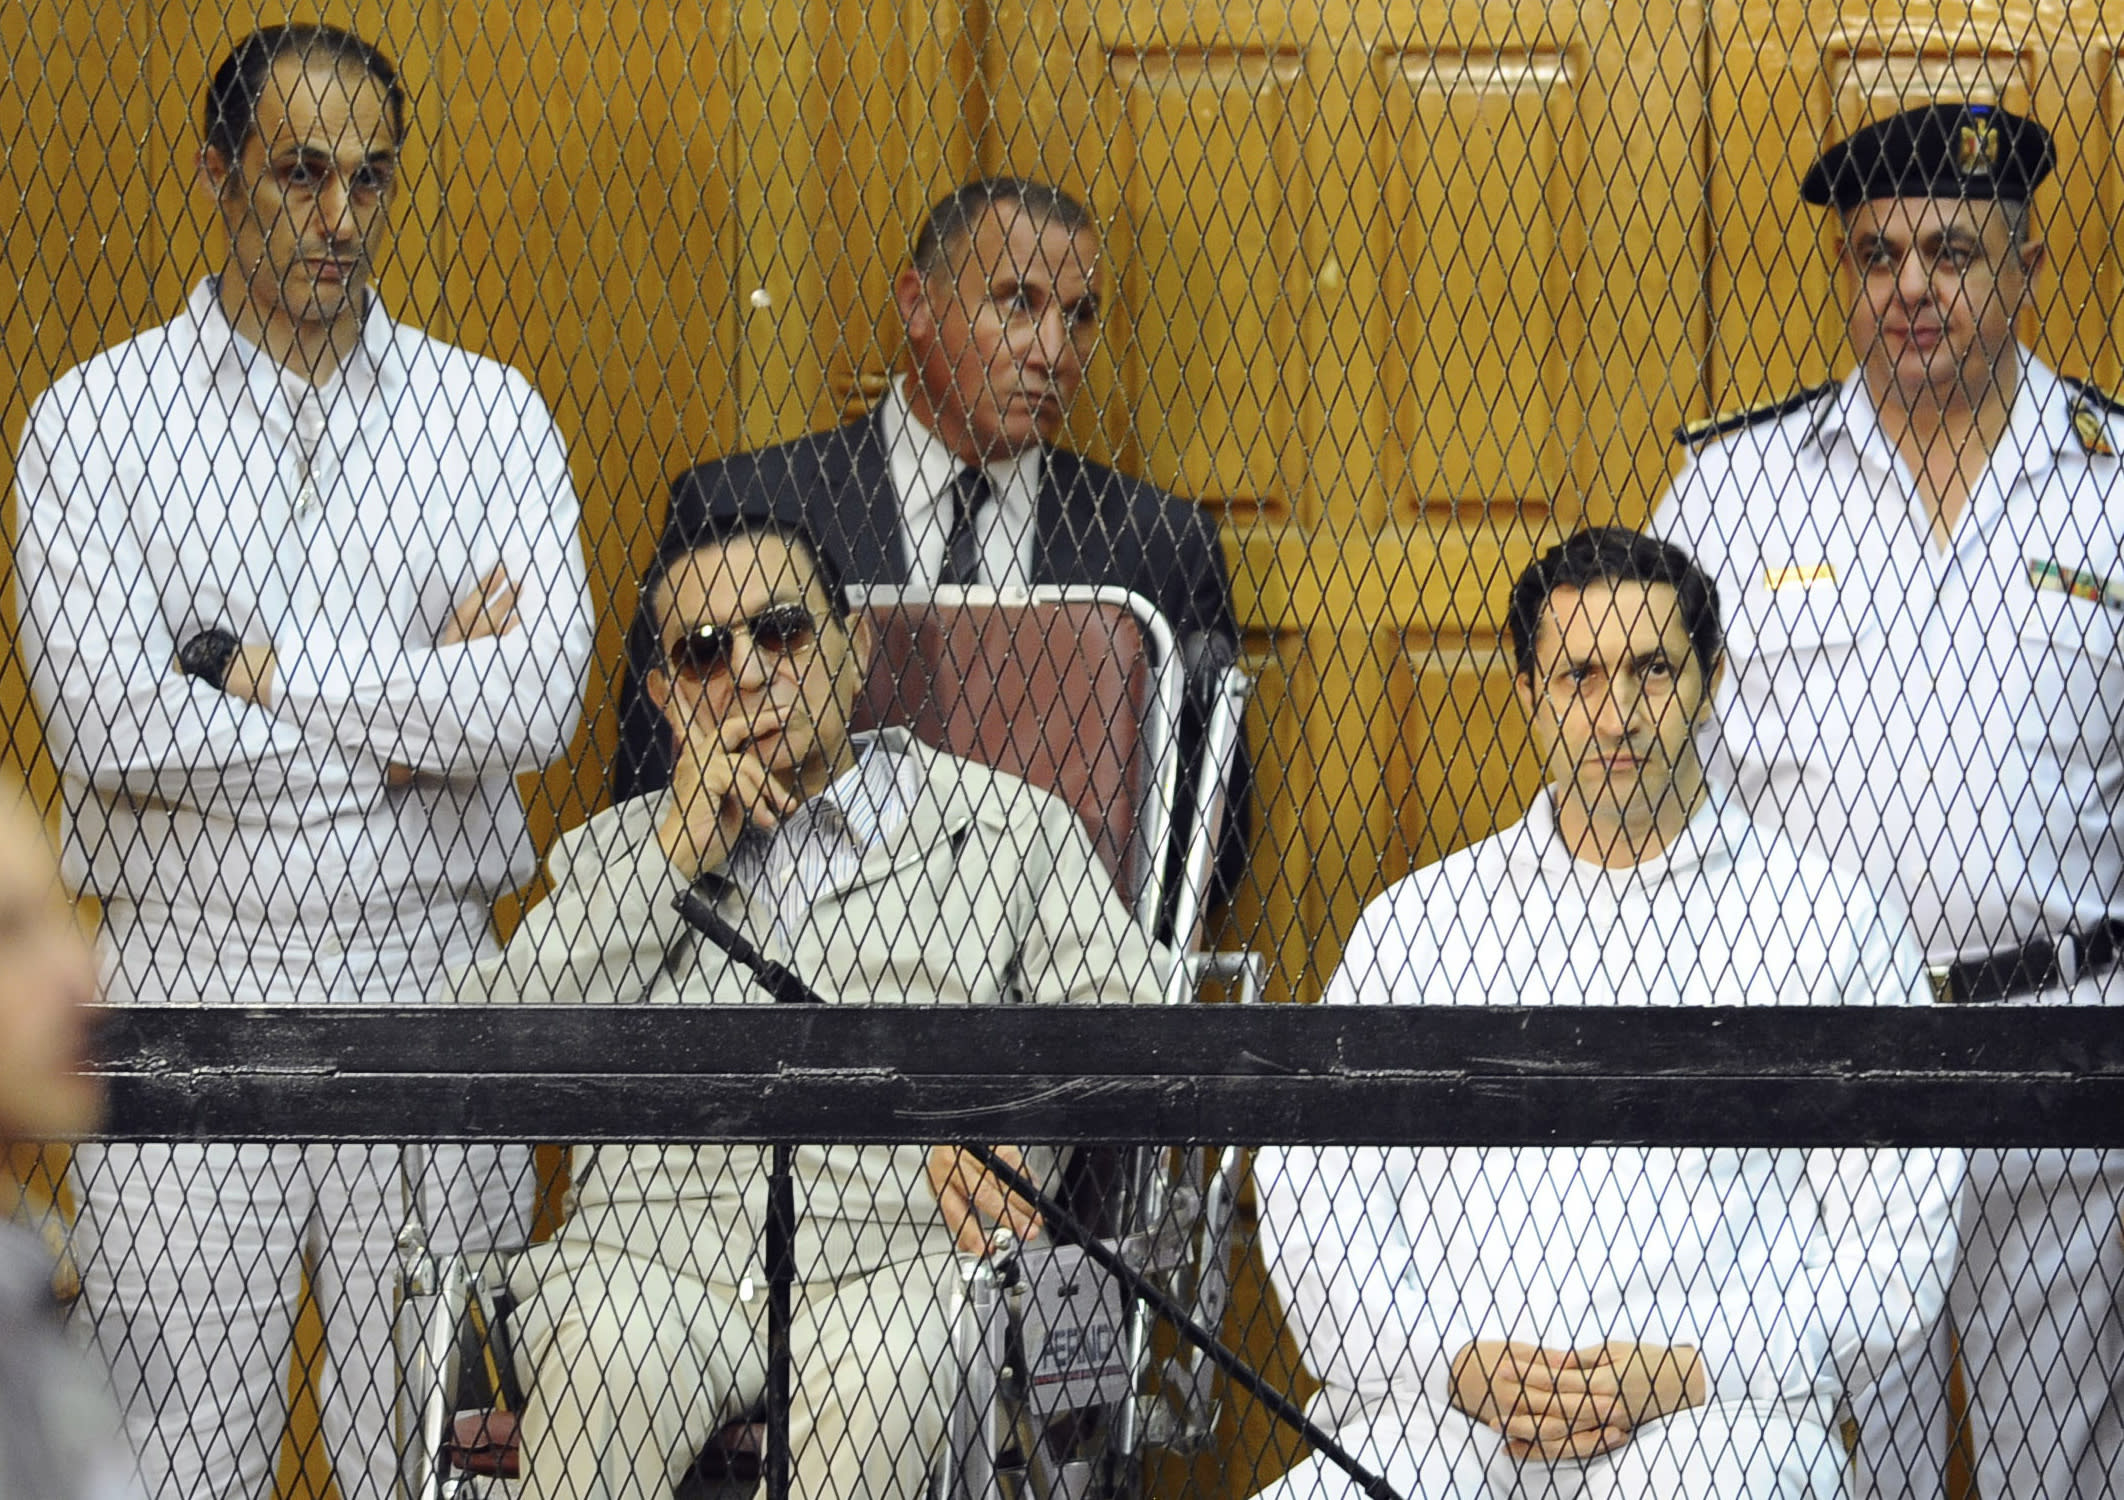 FILE - In this Sept. 14, 2013 file photo, former Egyptian President Hosni Mubarak, seated center left, and his two sons, Gamal Mubarak, left, and Alaa Mubarak attend a hearing in a courtroom in Cairo, Egypt. An Egyptian court on Thursday, Sept. 20, 2018 ordered the release from detention of former president Hosni Mubarak's two sons who are on trial on insider trading charges. (AP Photo/Mohammed al-Law, File)